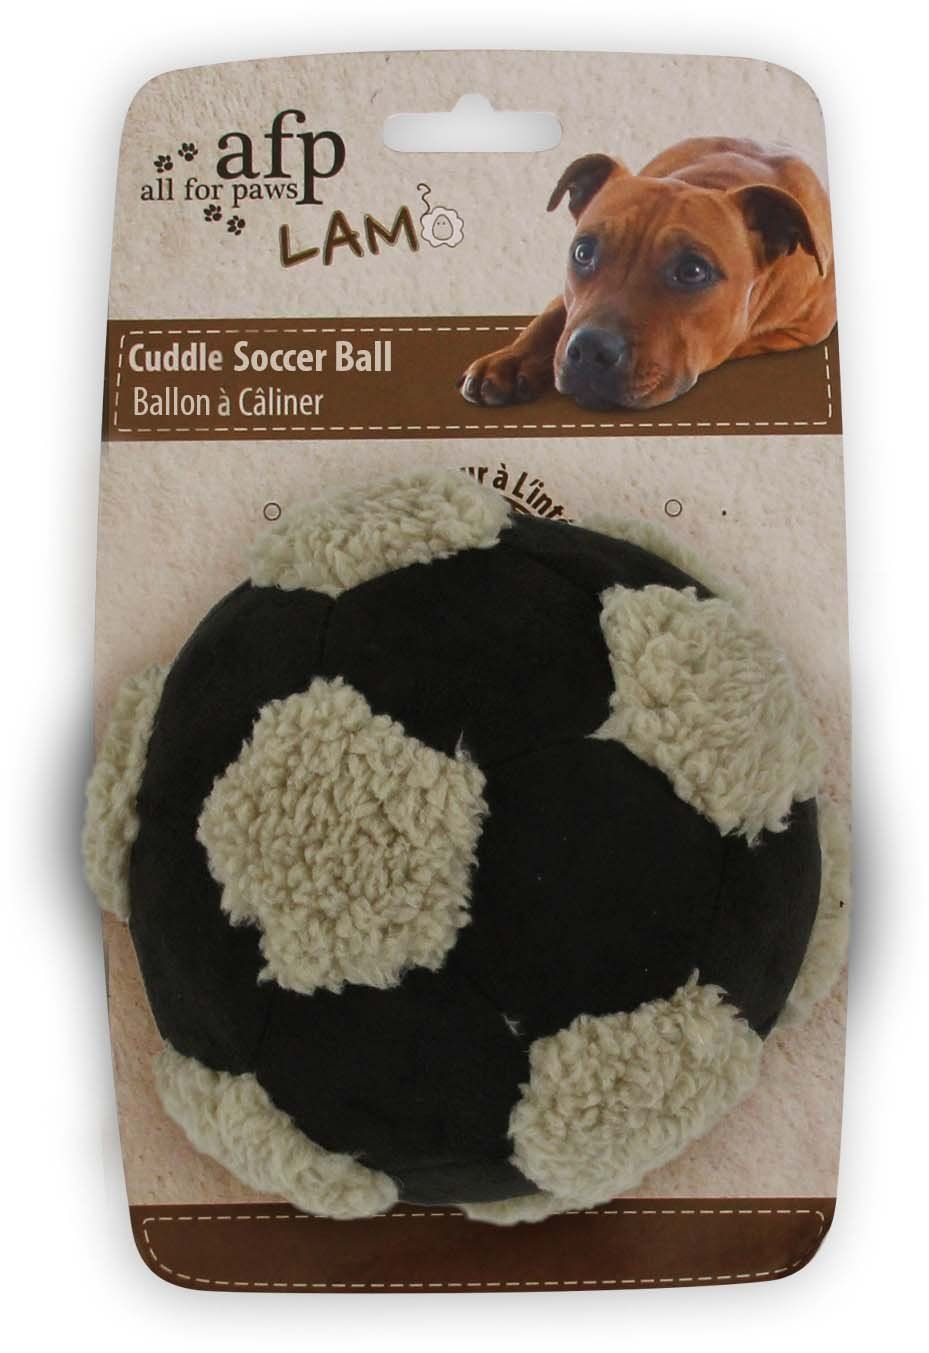 All for Paws Assorted Lamb Cuddle Soccer Ball for Dogs